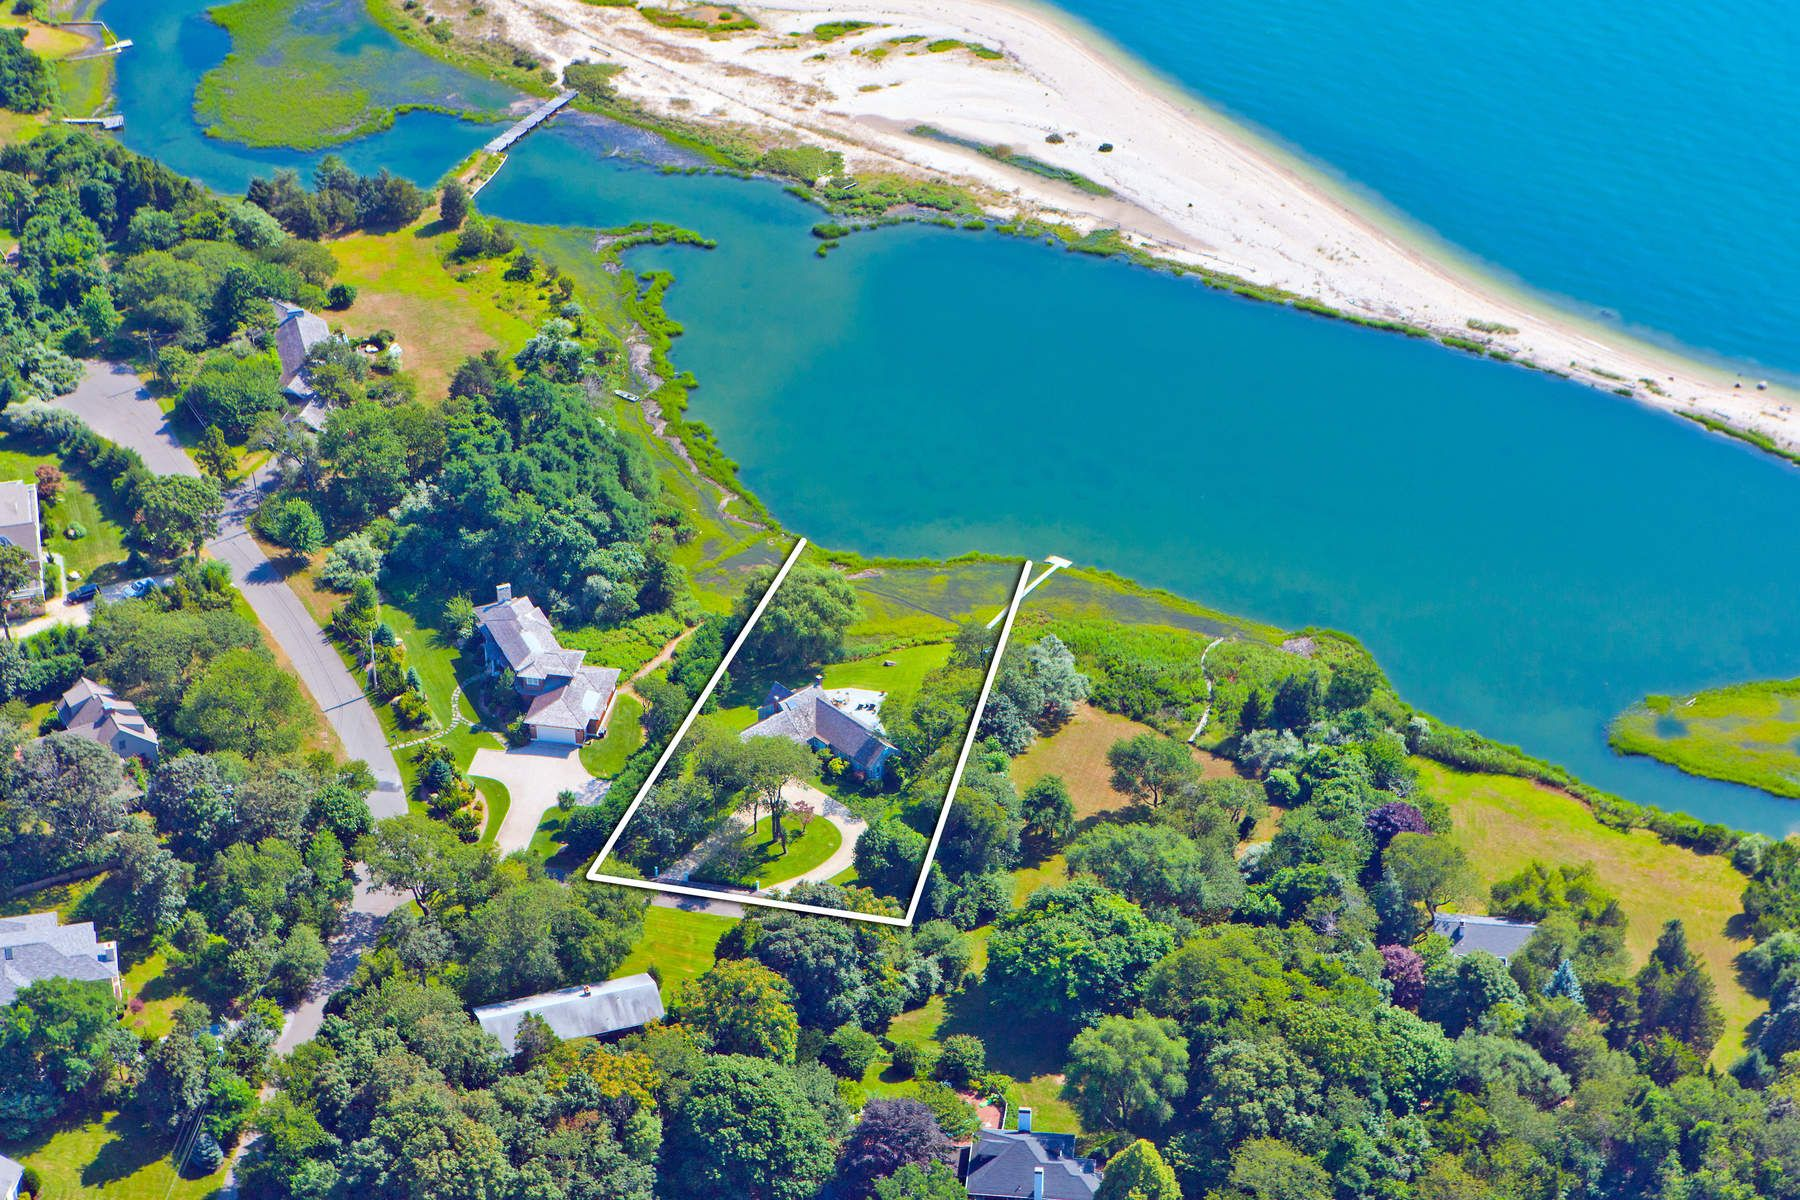 Single Family Home for Sale at Exceptional Waterfront in Sag Harbor Sag Harbor, New York 11963 United States